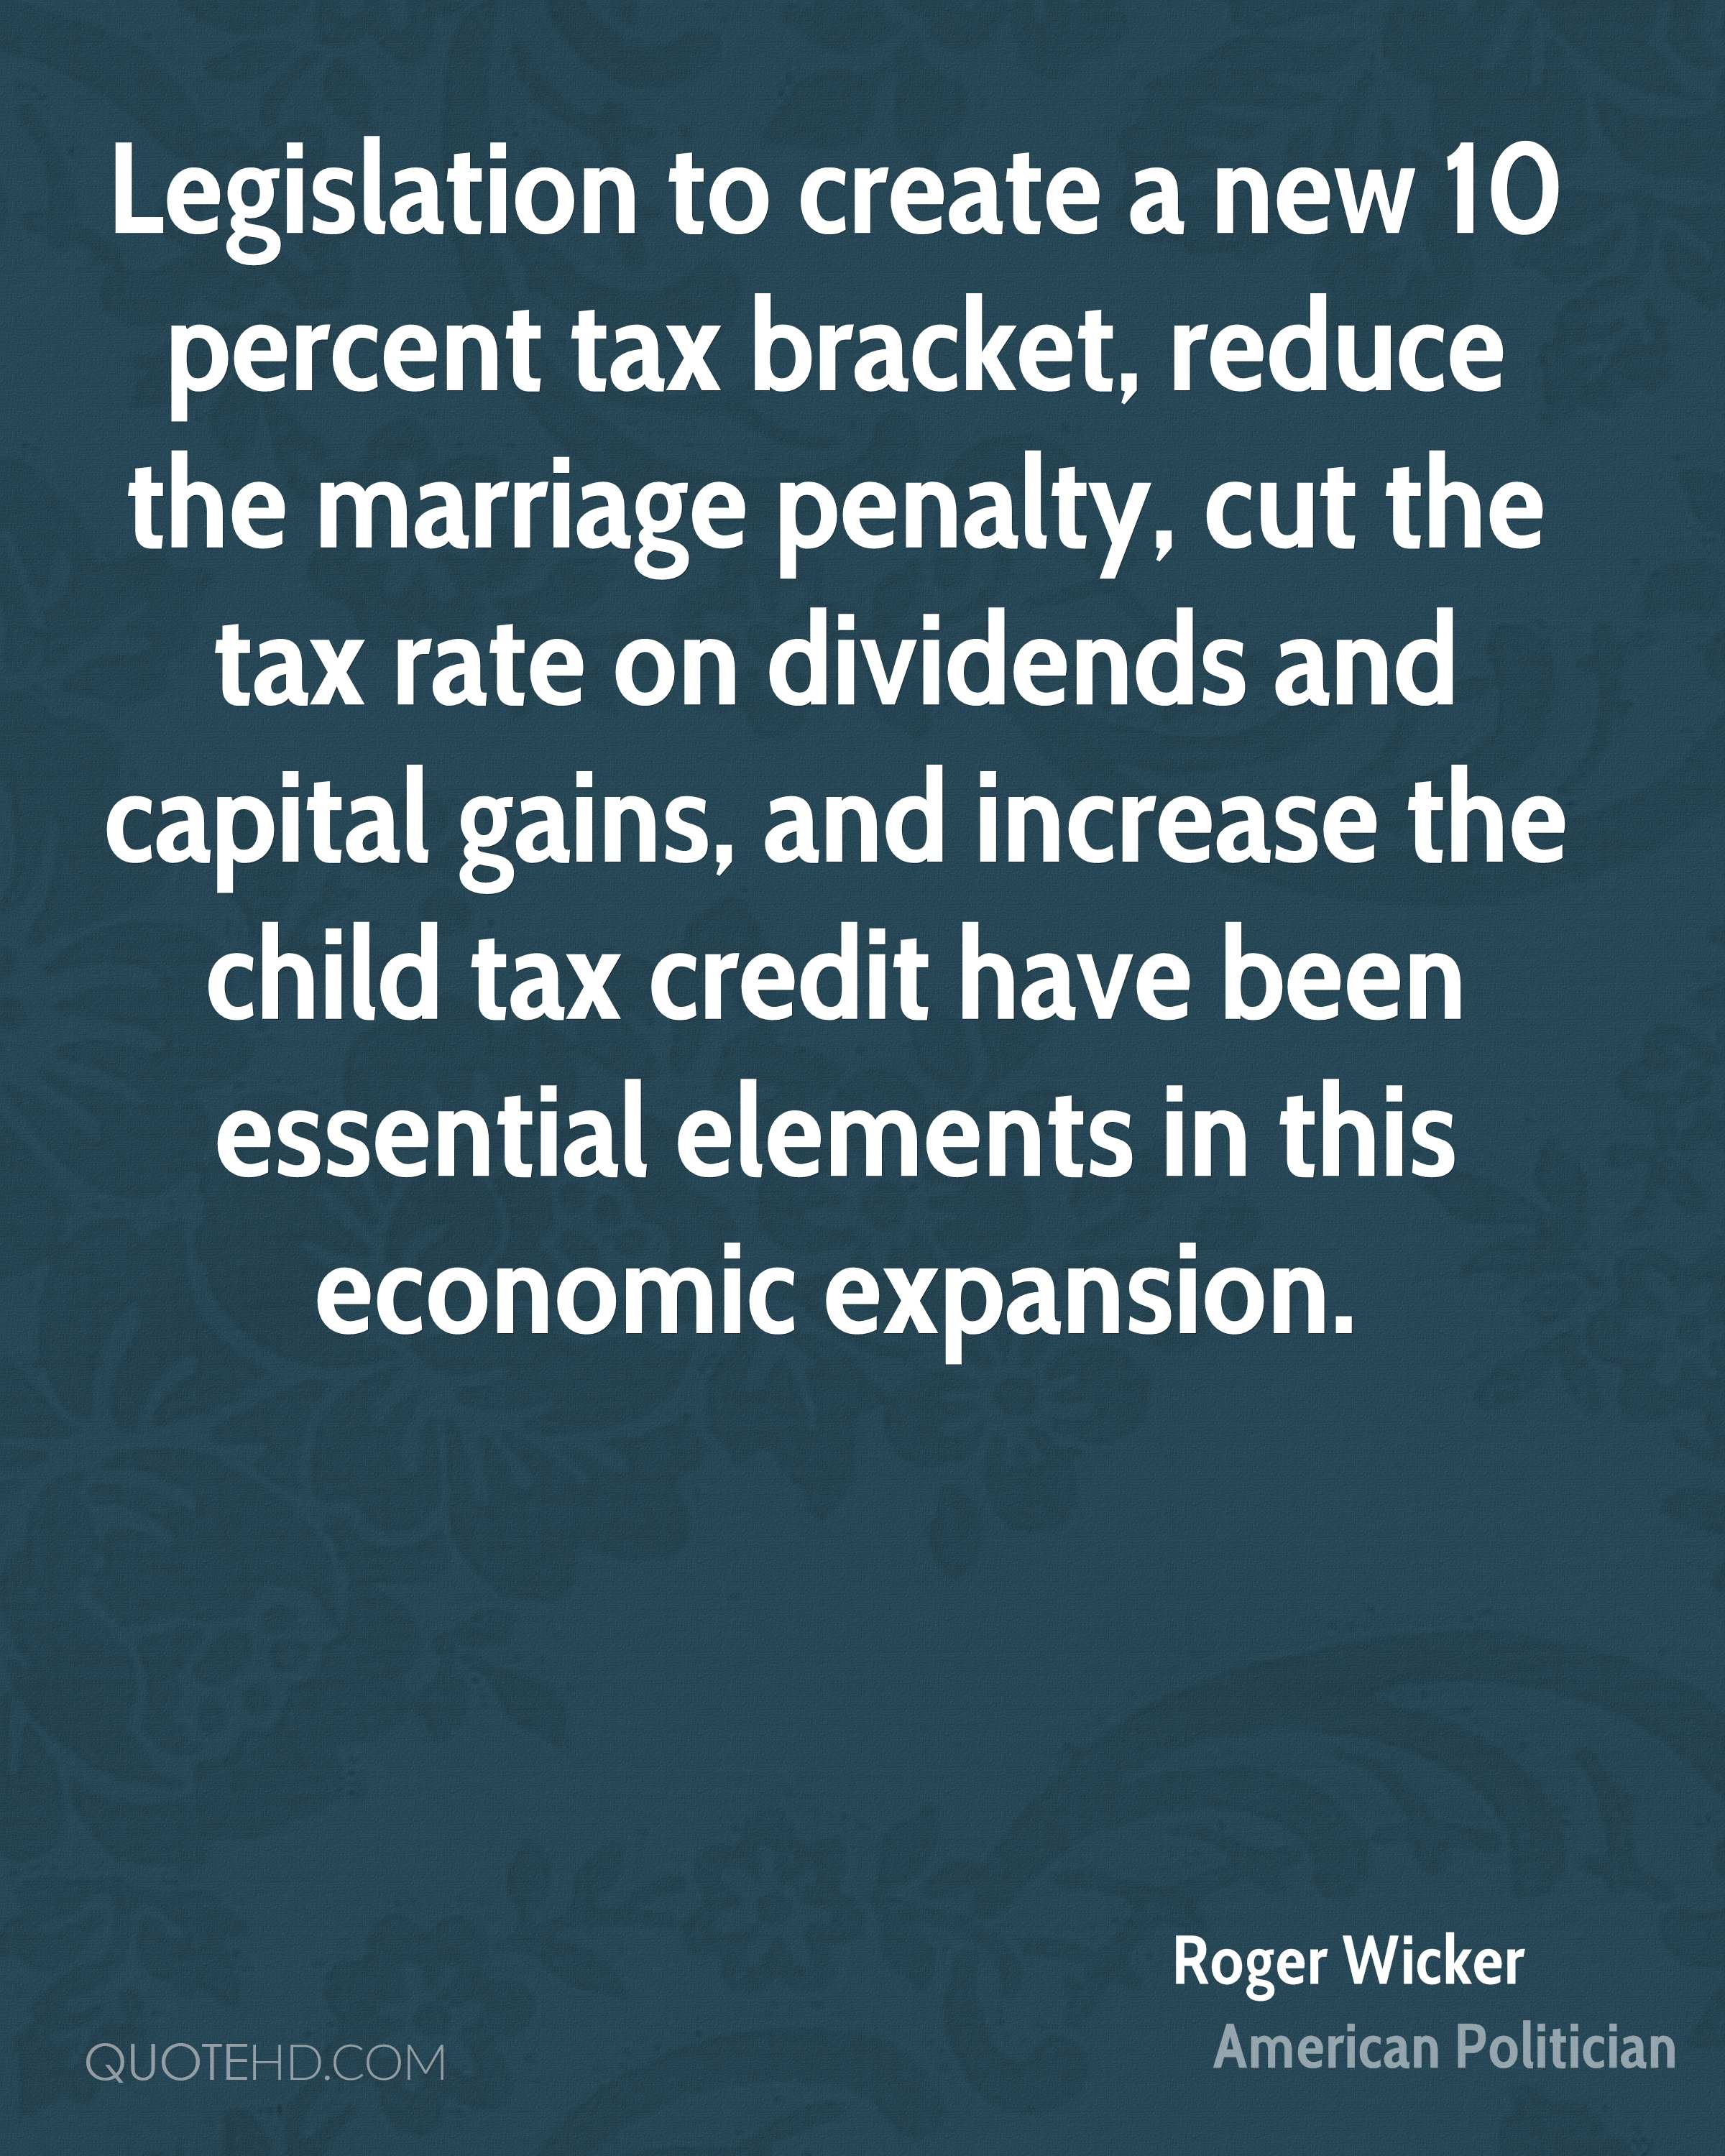 Legislation to create a new 10 percent tax bracket, reduce the marriage penalty, cut the tax rate on dividends and capital gains, and increase the child tax credit have been essential elements in this economic expansion.